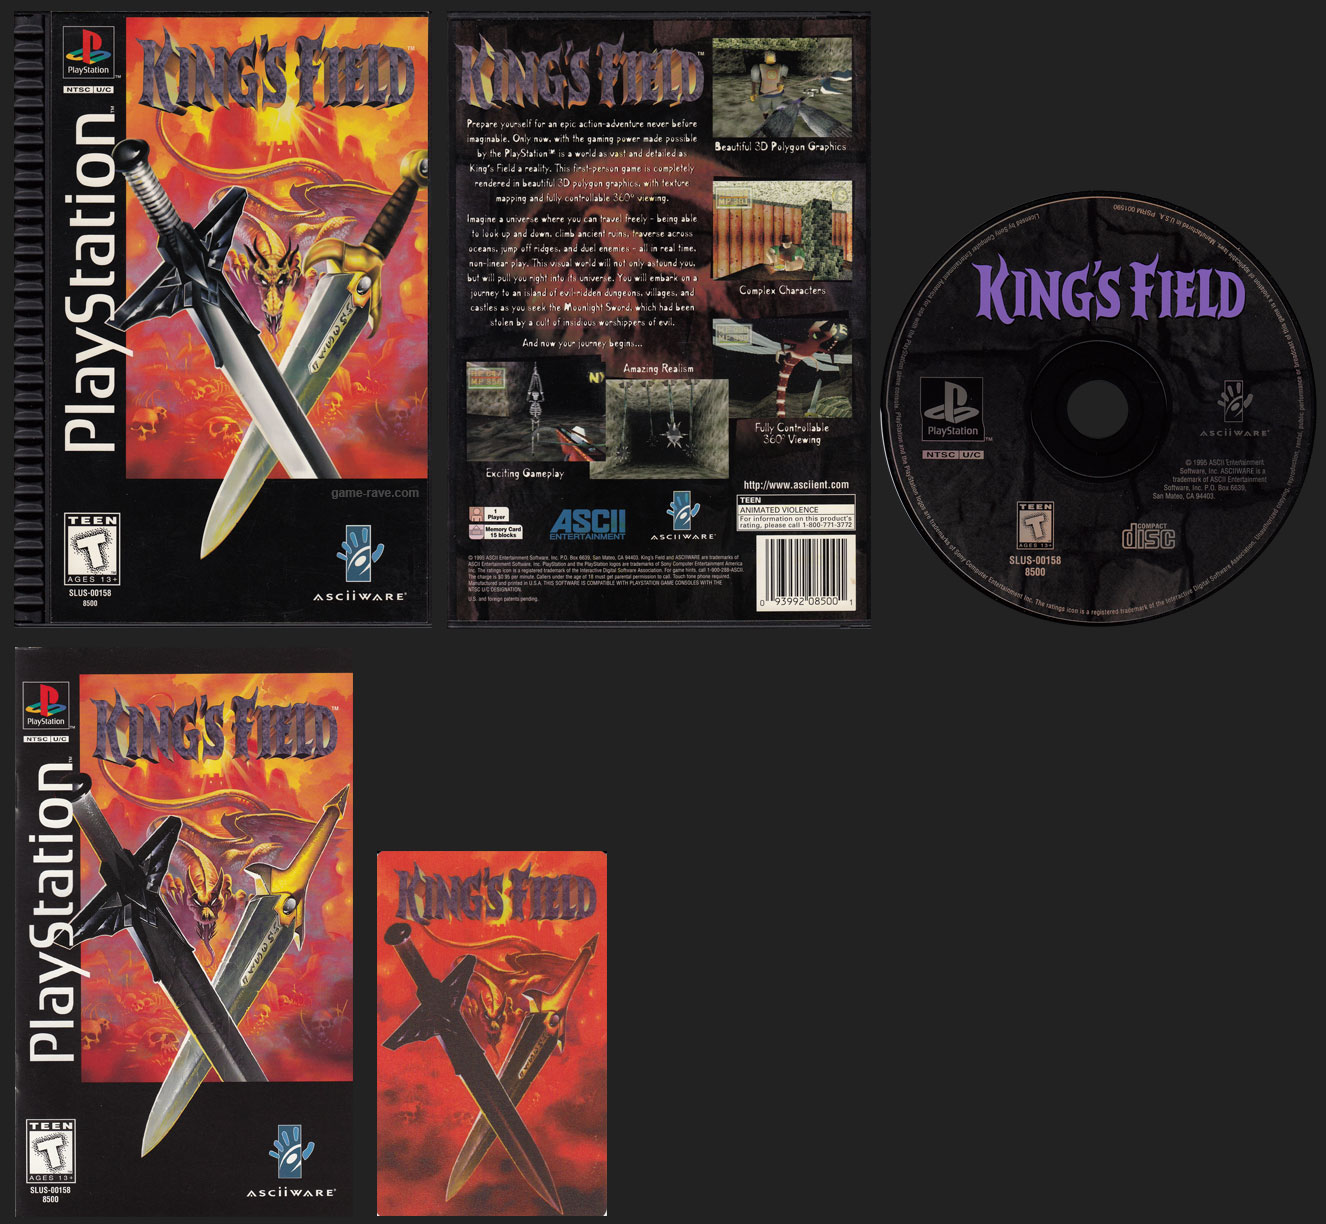 PSX PlayStation King's Field Plastic Ridged Long Box Black Label Retail Release with Phone Card